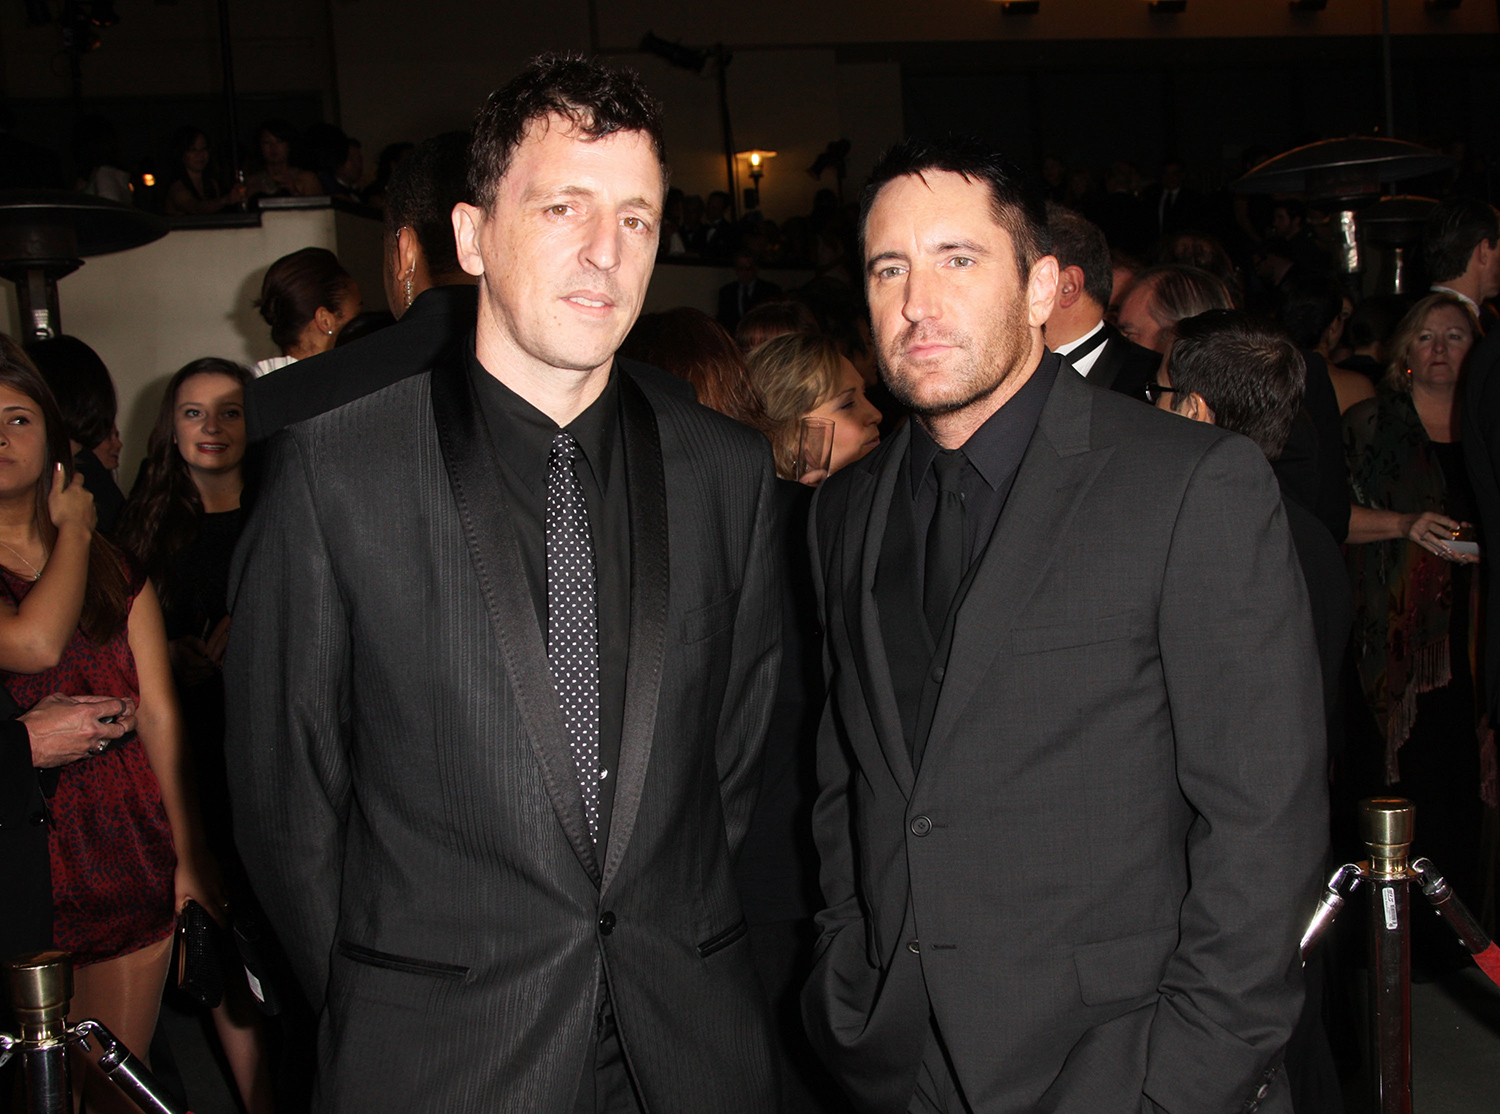 Trent Reznor Atticus Ross Working On New Nine Inch Nails